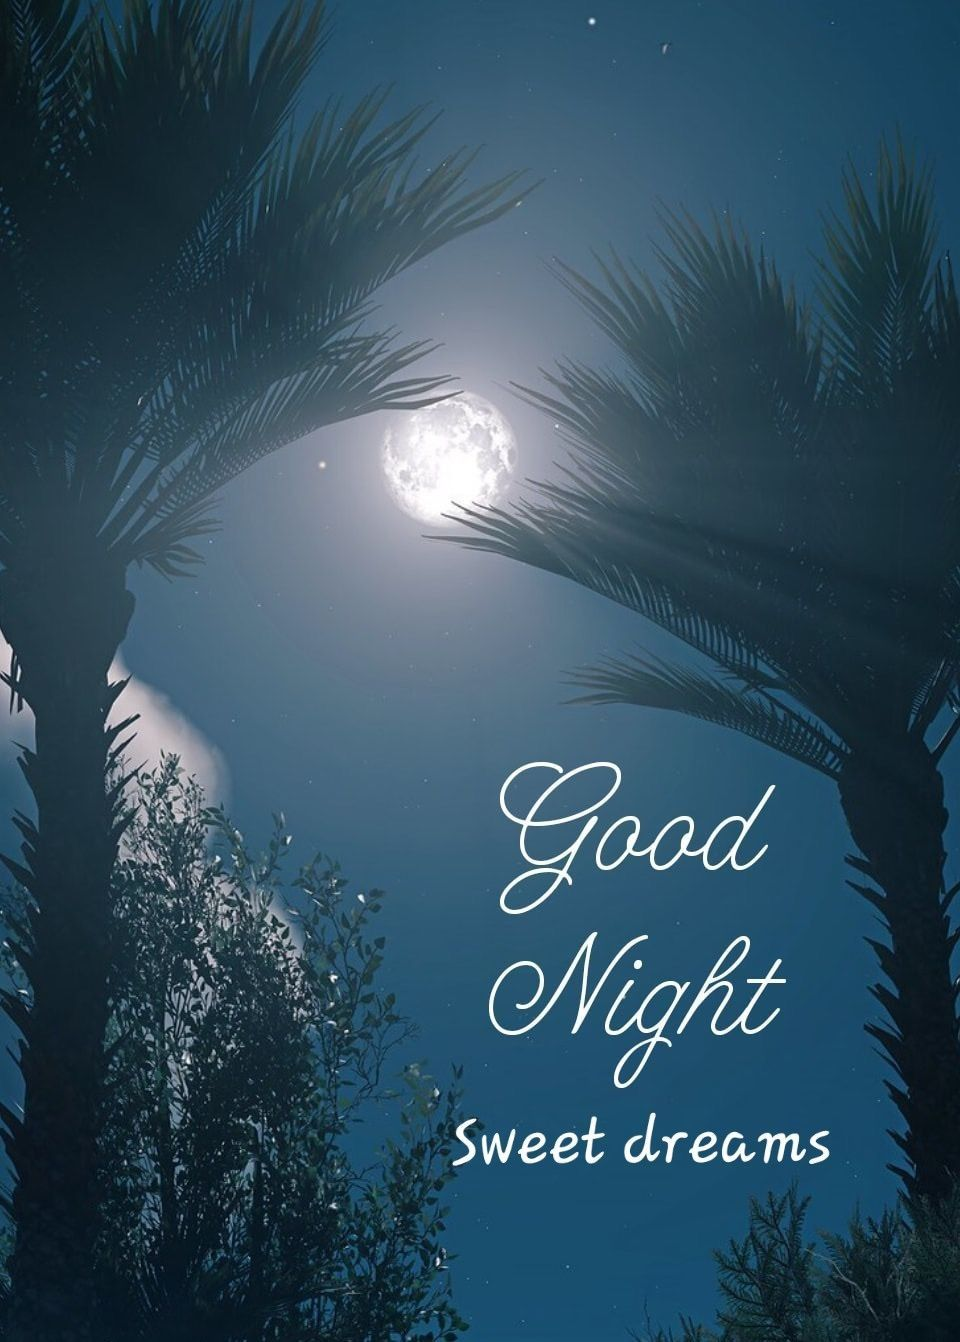 Creative Good Night Messages for Friends